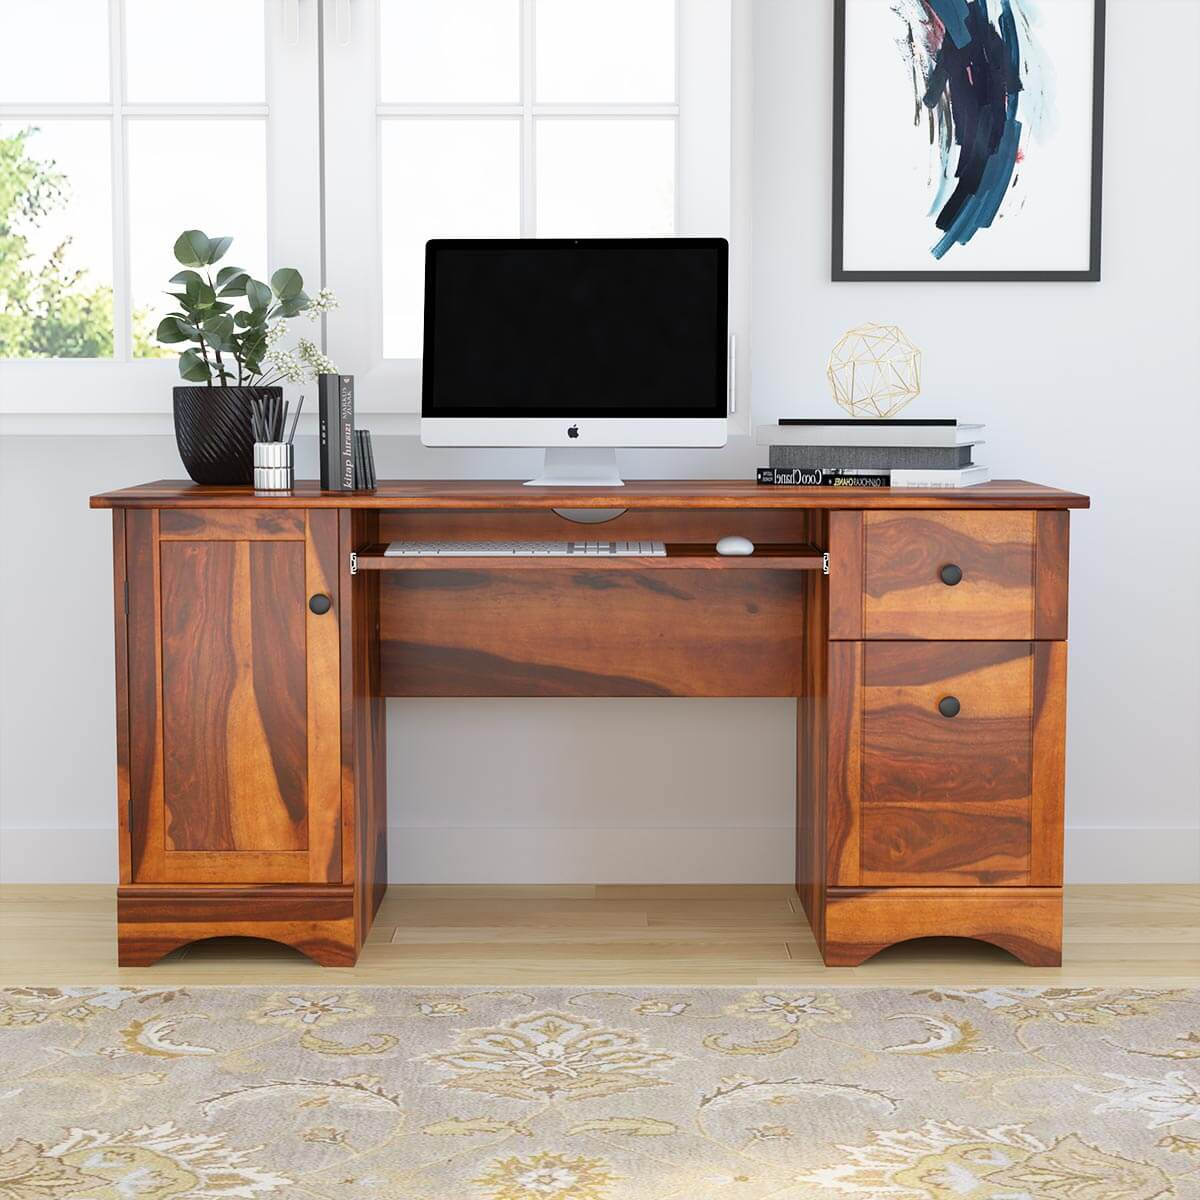 Gisela Rustic Solid Wood Computer Desk With Cabinet & Drawers